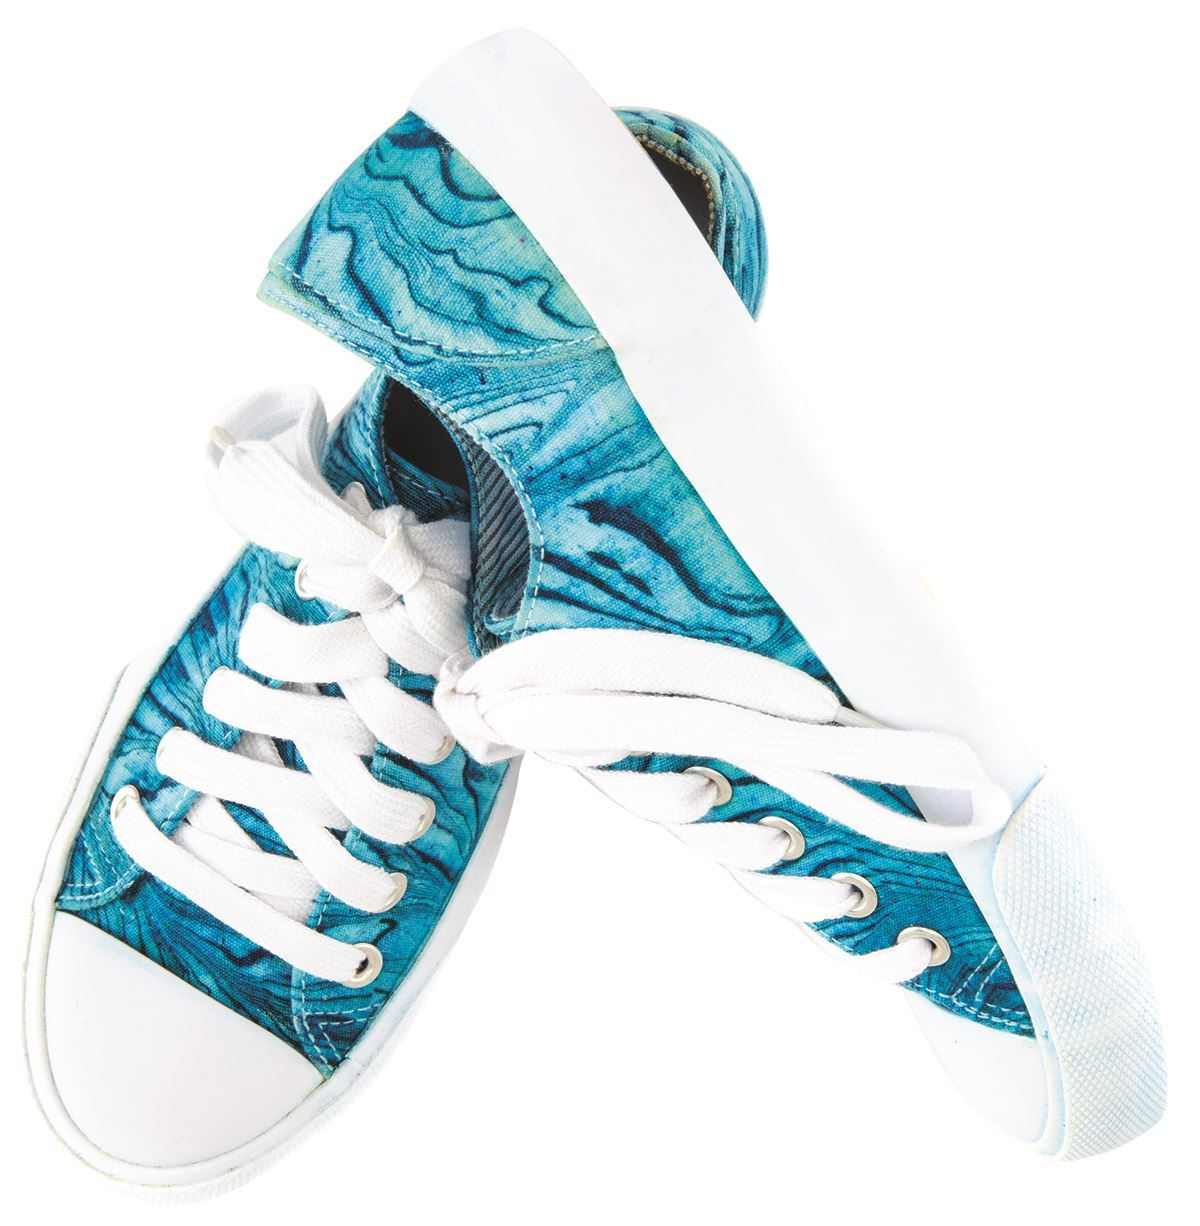 Turquoise Marbling Shoes